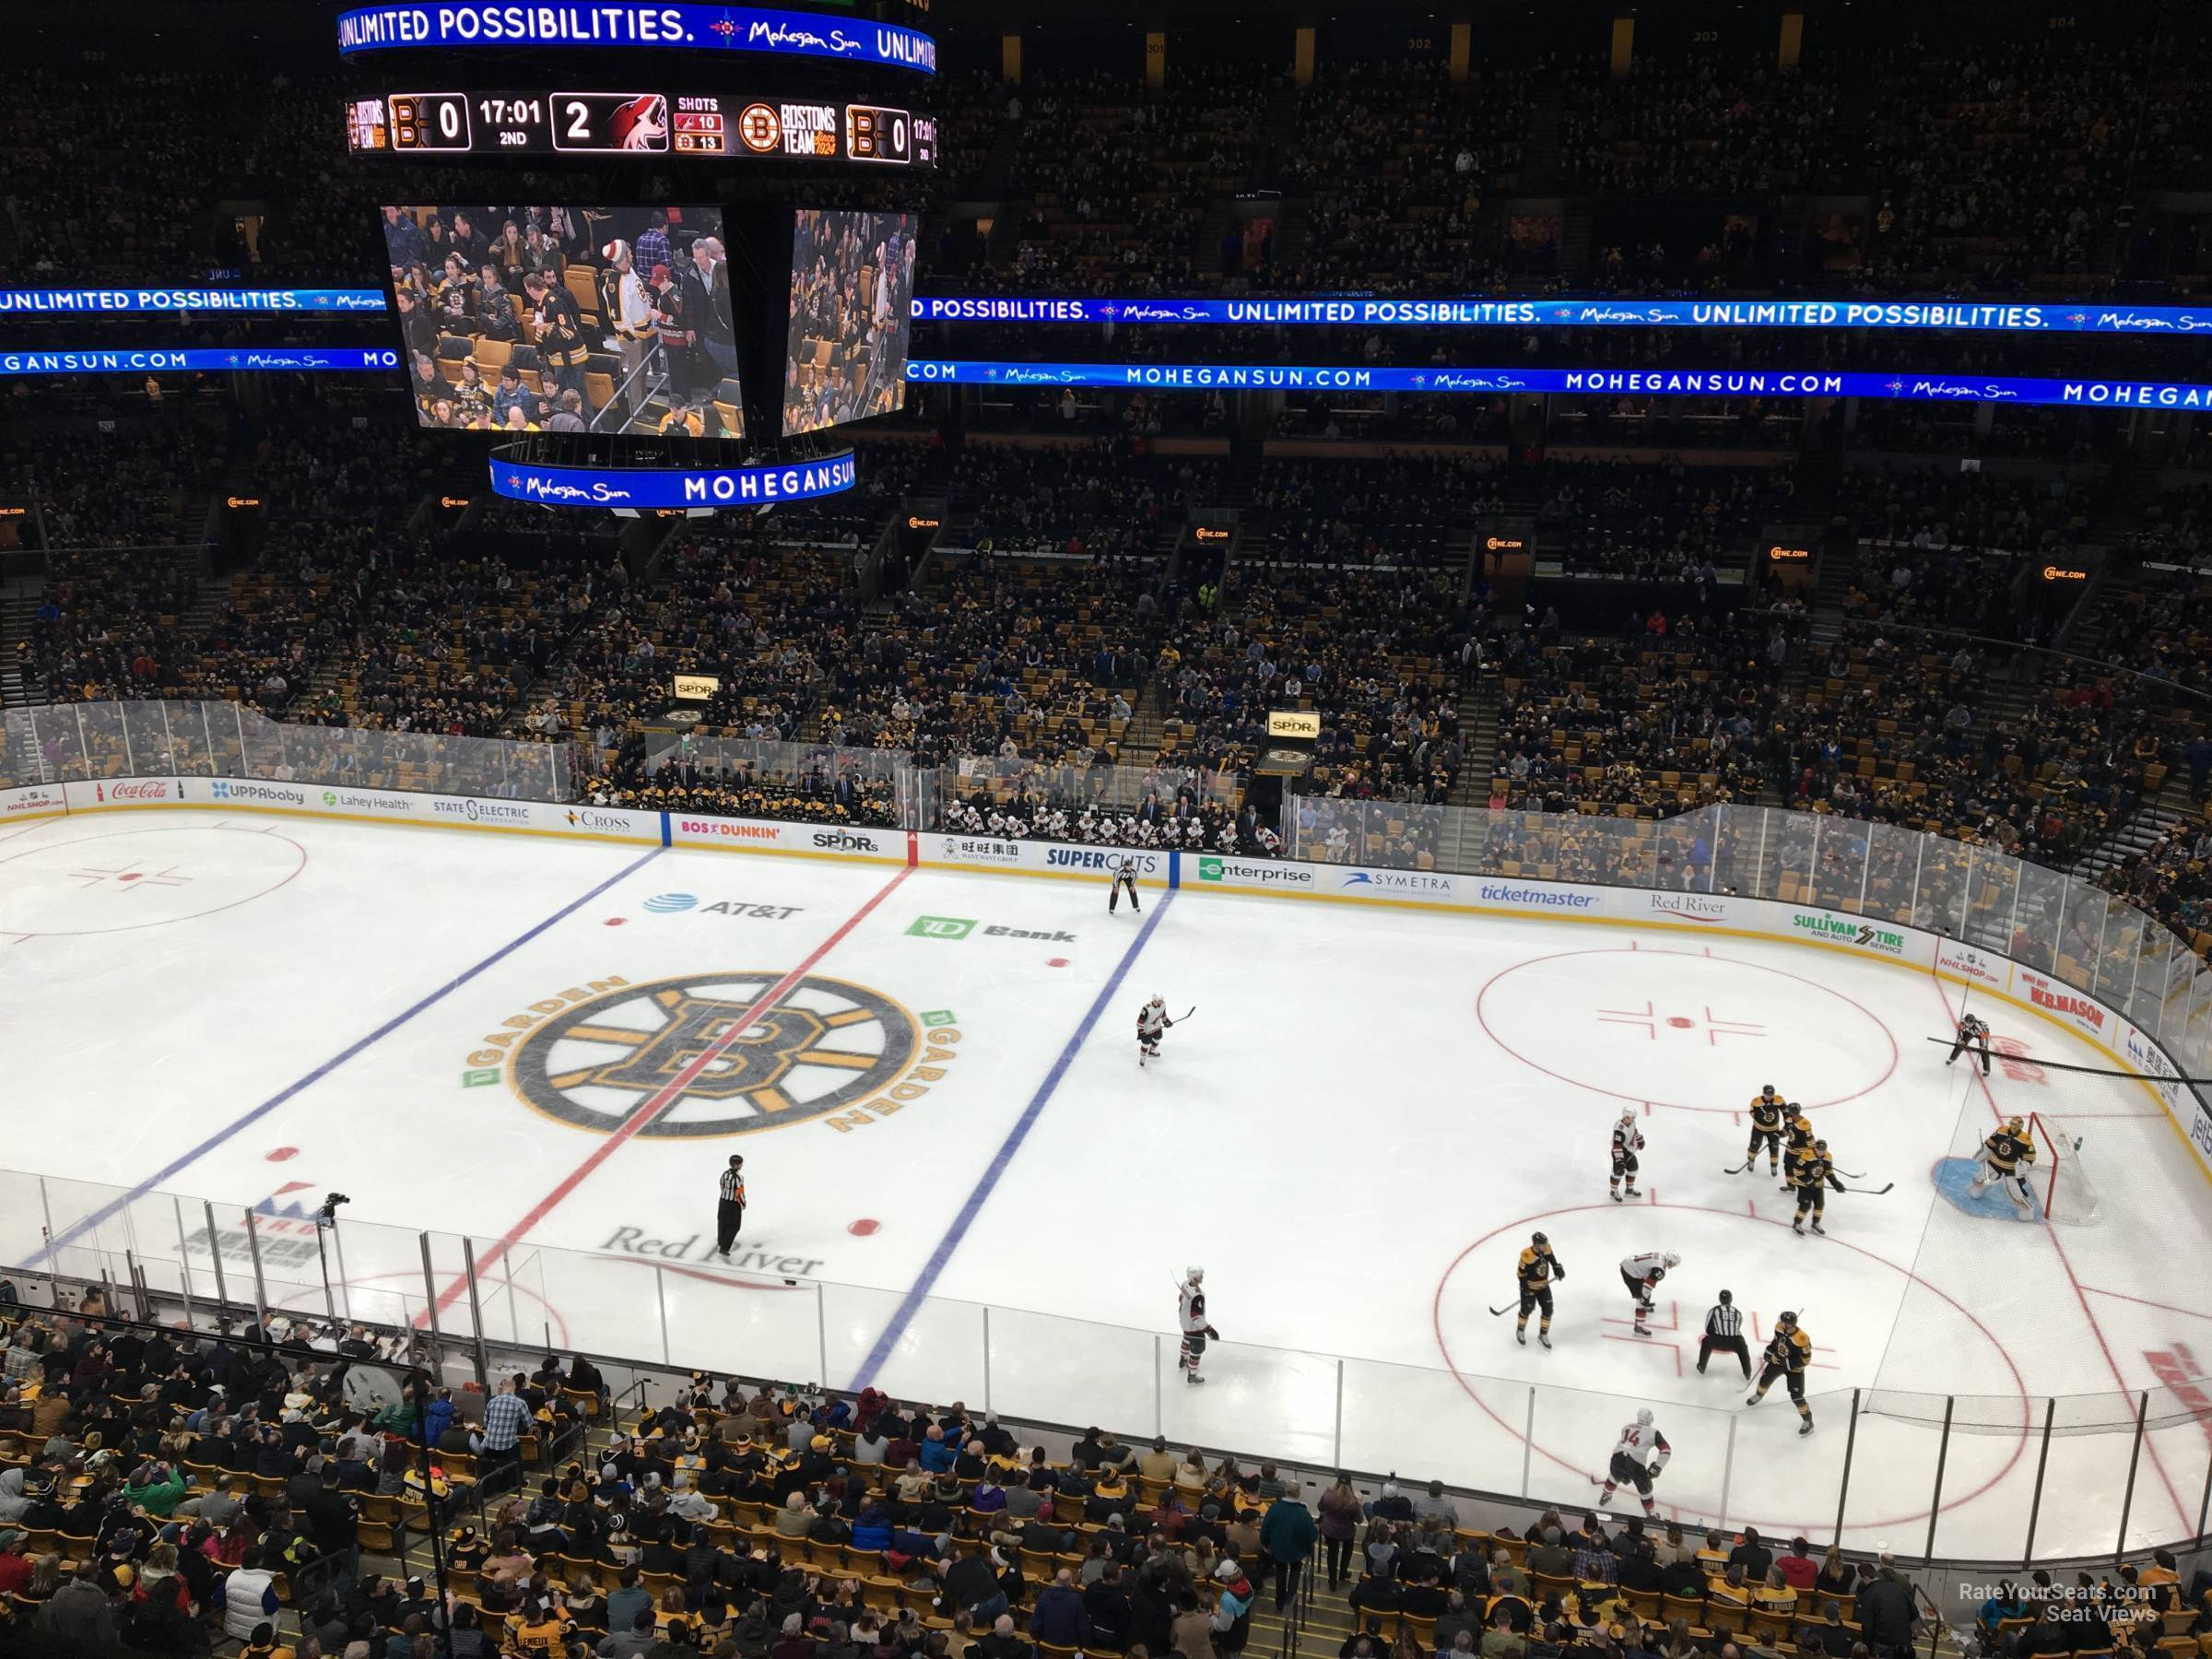 Section 314 seat view